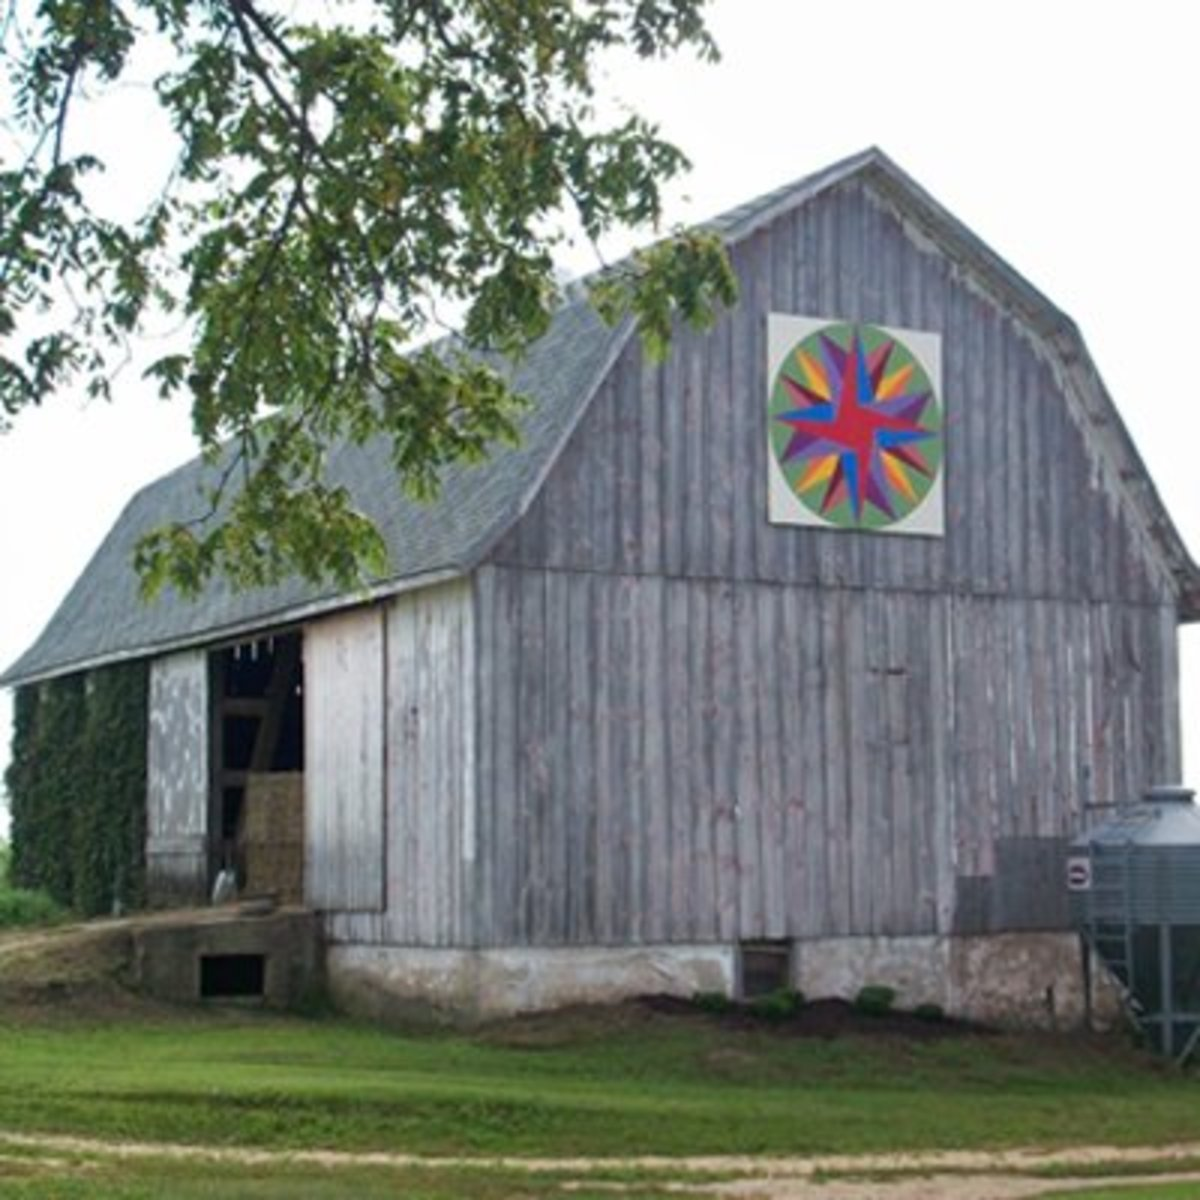 Barn Quilts Are Covering Barns Across Rural America